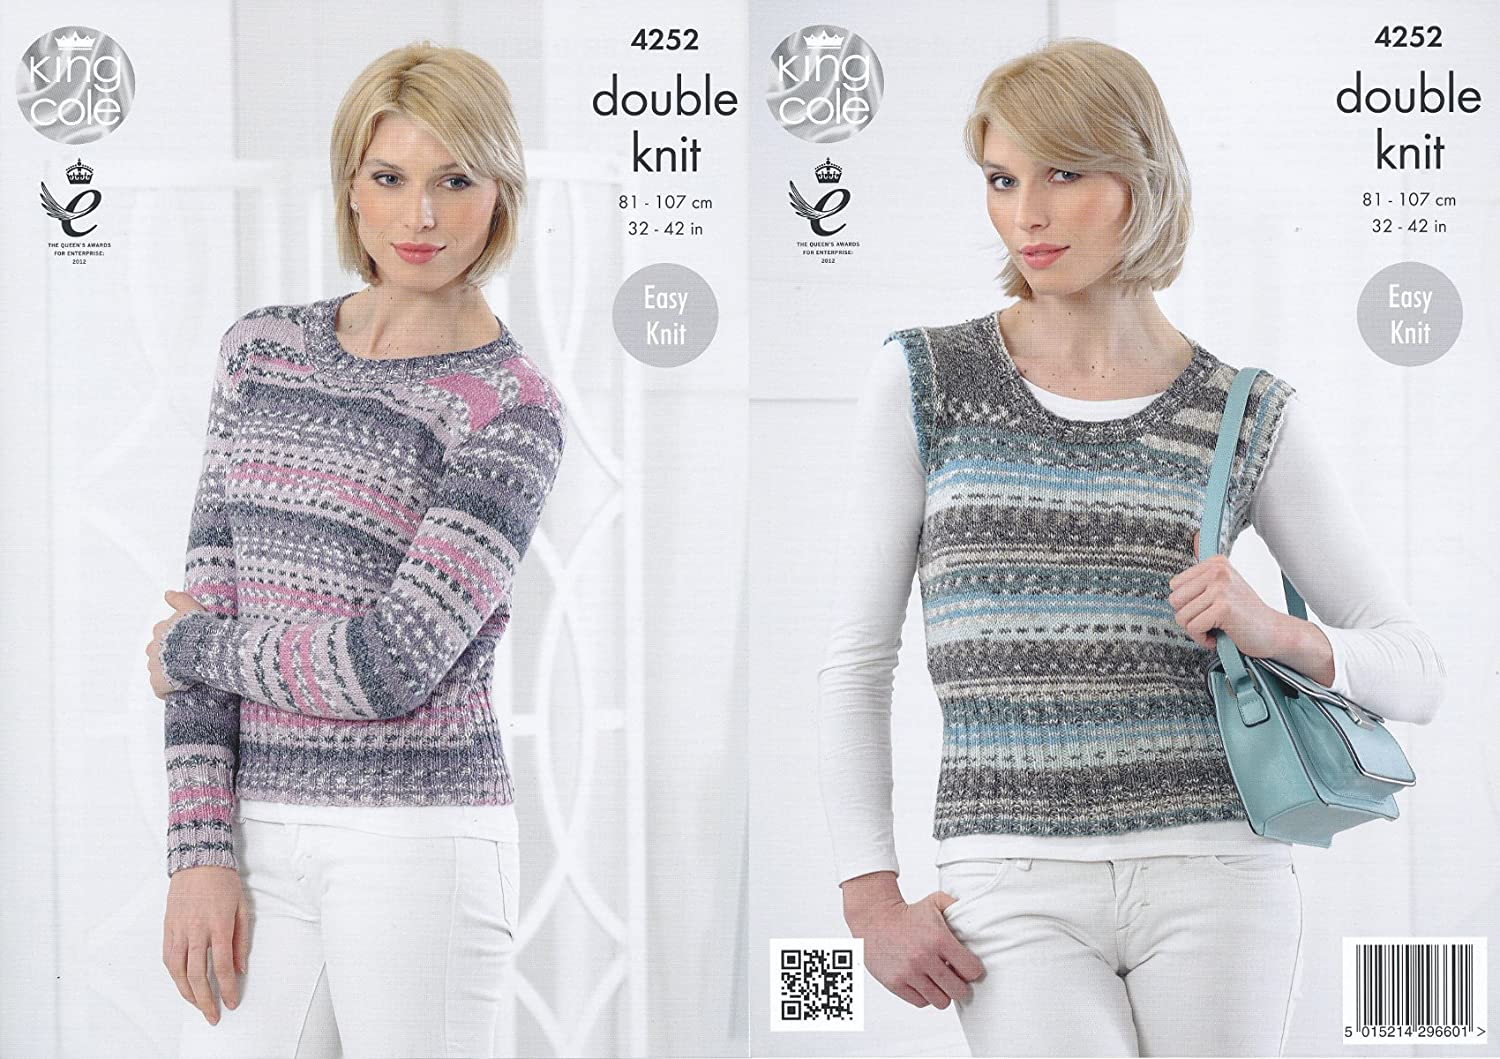 King Cole Ladies Double Knitting Pattern Womens Ribbed Detail Sweater & Pullover Drifter DK (4252) by King Cole